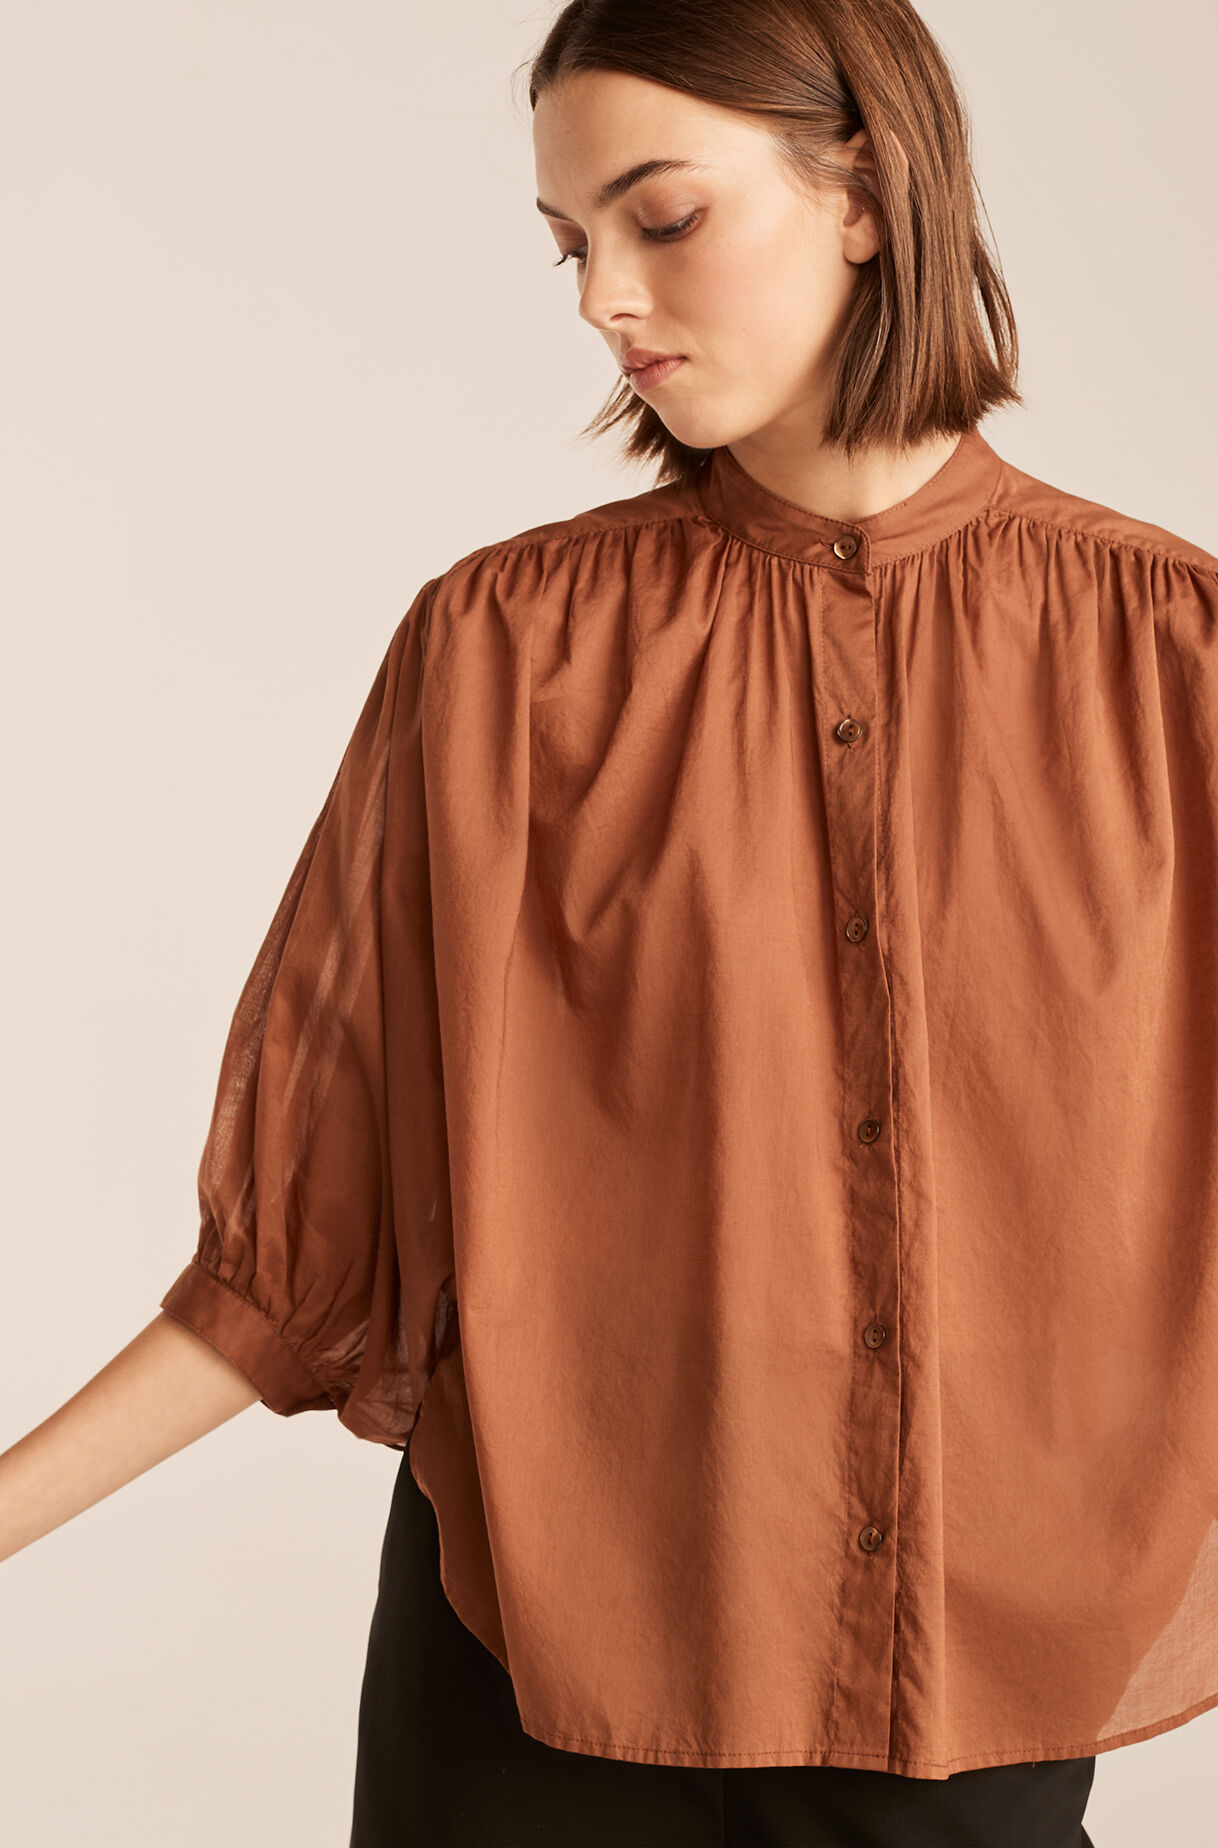 Voile Button Down, Pecan, large